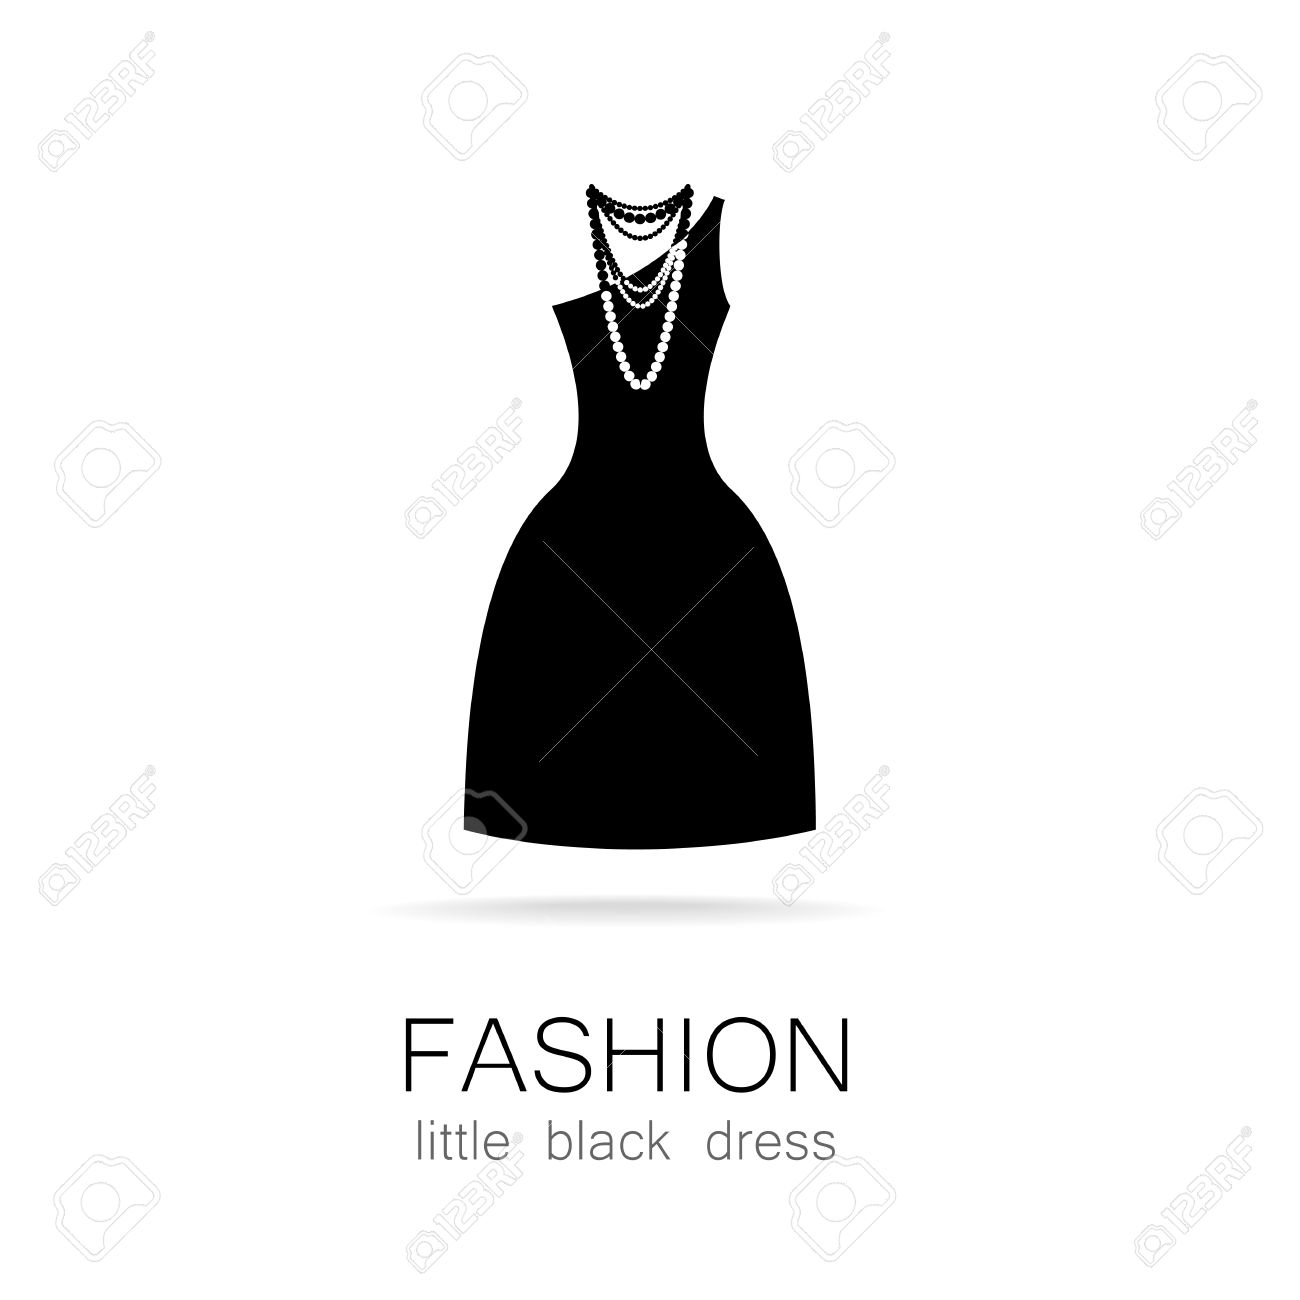 Black Dress Classic Fashion Template Logo For A Clothing Store Royalty Free Cliparts Vectors And Stock Illustration Image 43026623